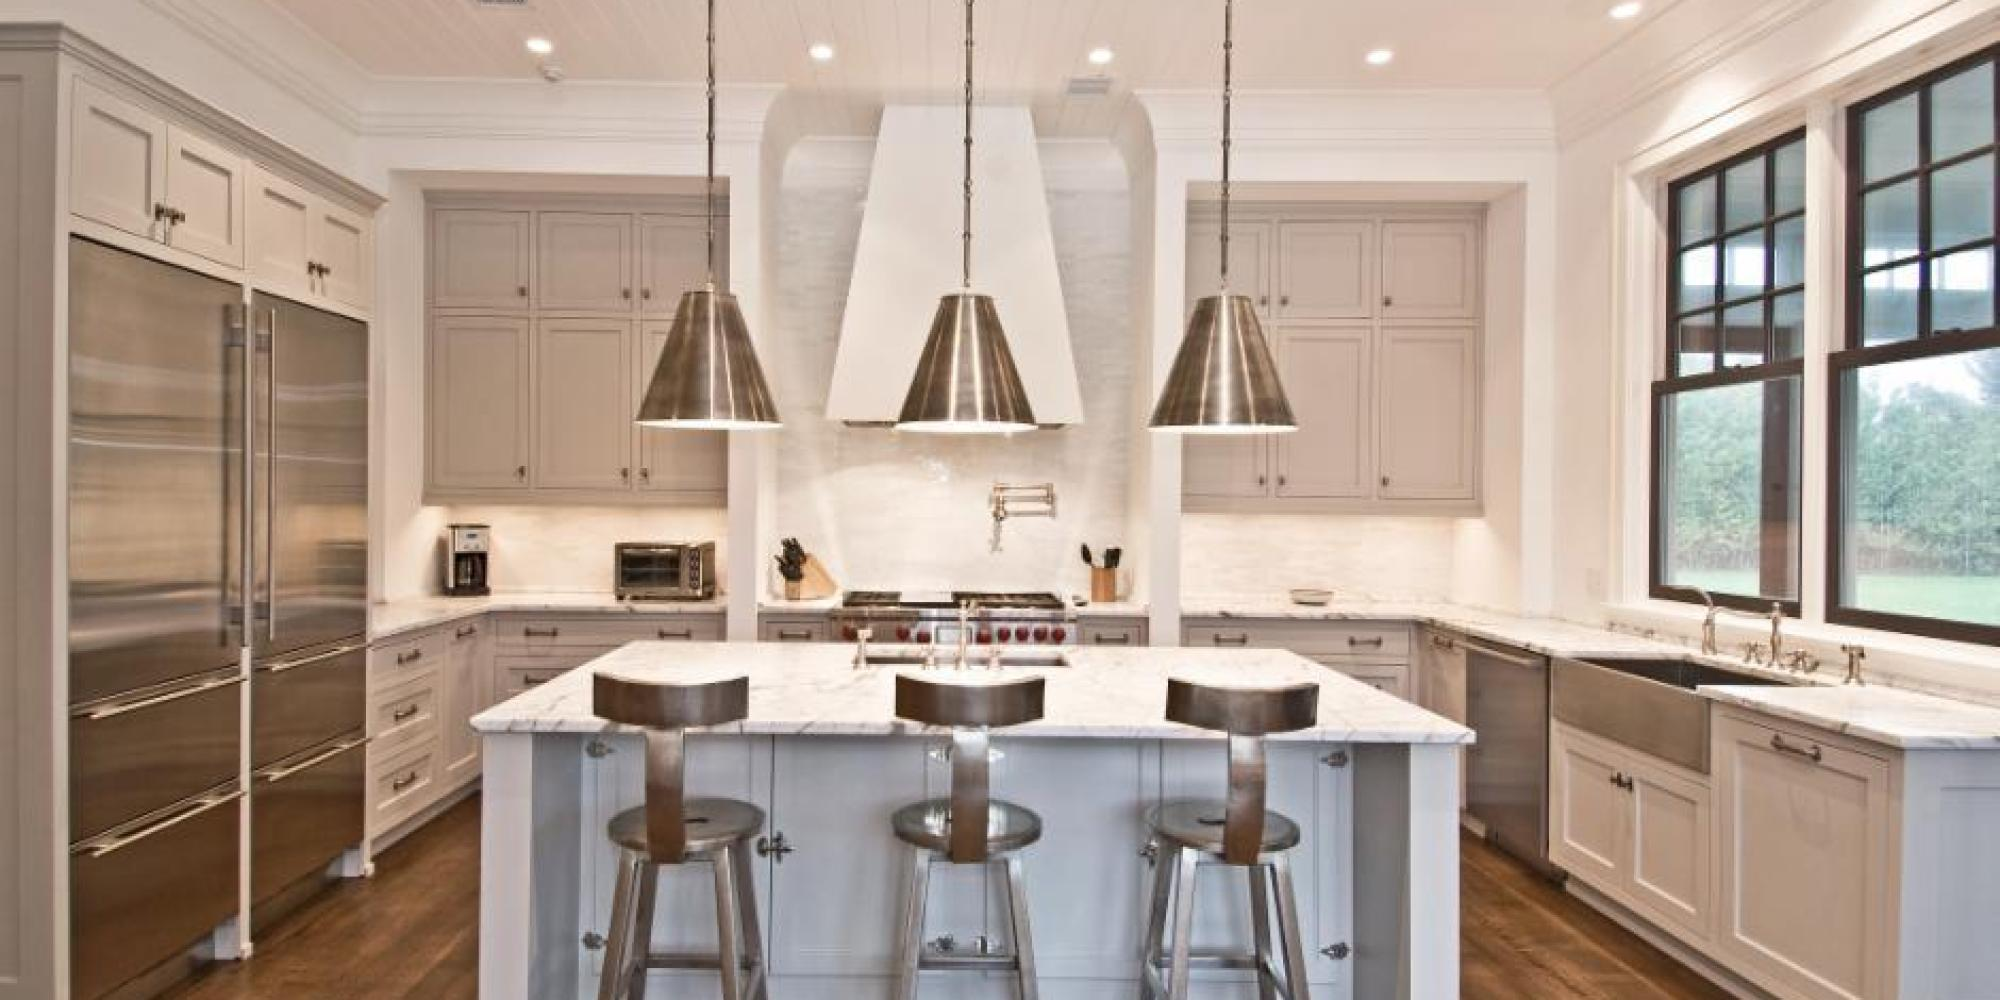 Images of The Best Paint Colors for Every Type of Kitchen | HuffPost kitchen paint colors with white cabinets